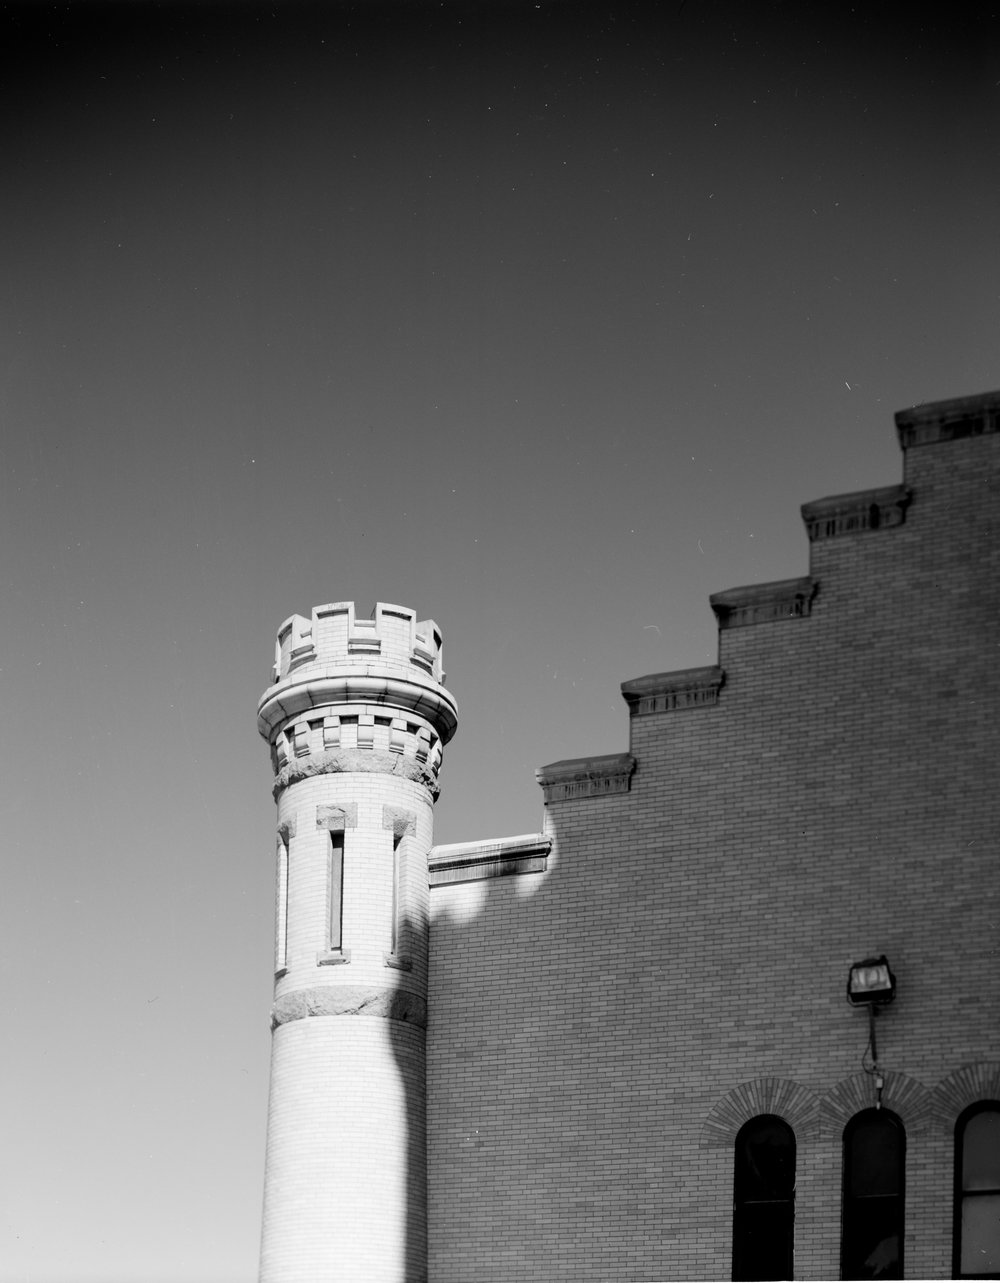 tower_detail_01 1.jpg